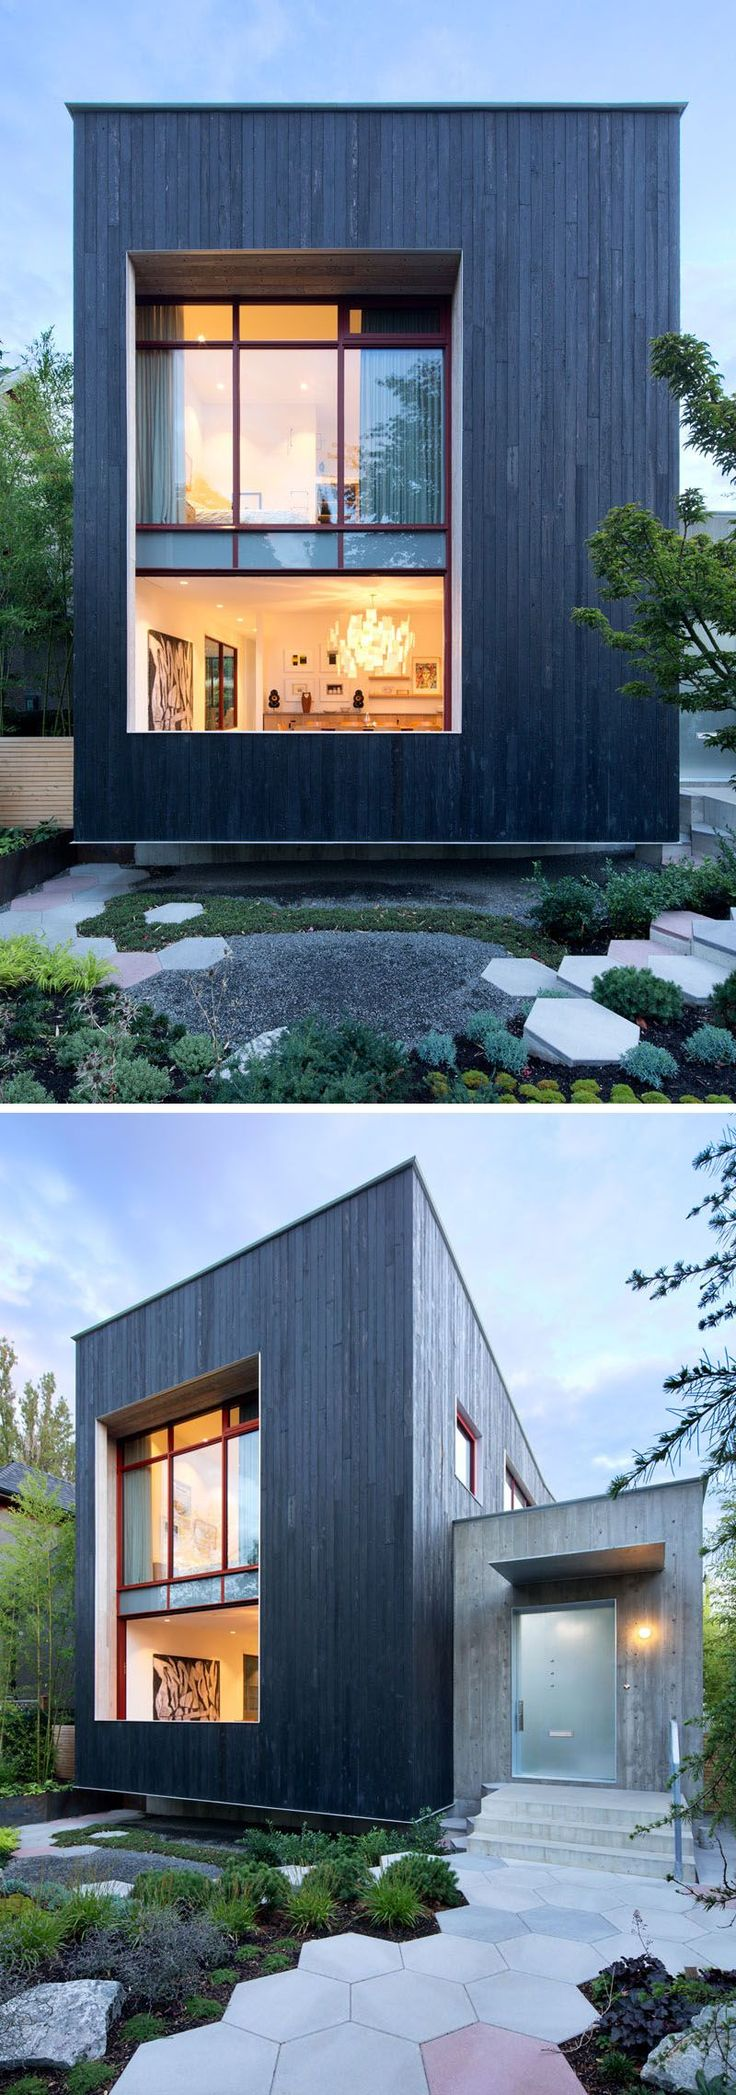 1025 best House and Home images on Pinterest | Homes, Architecture ...